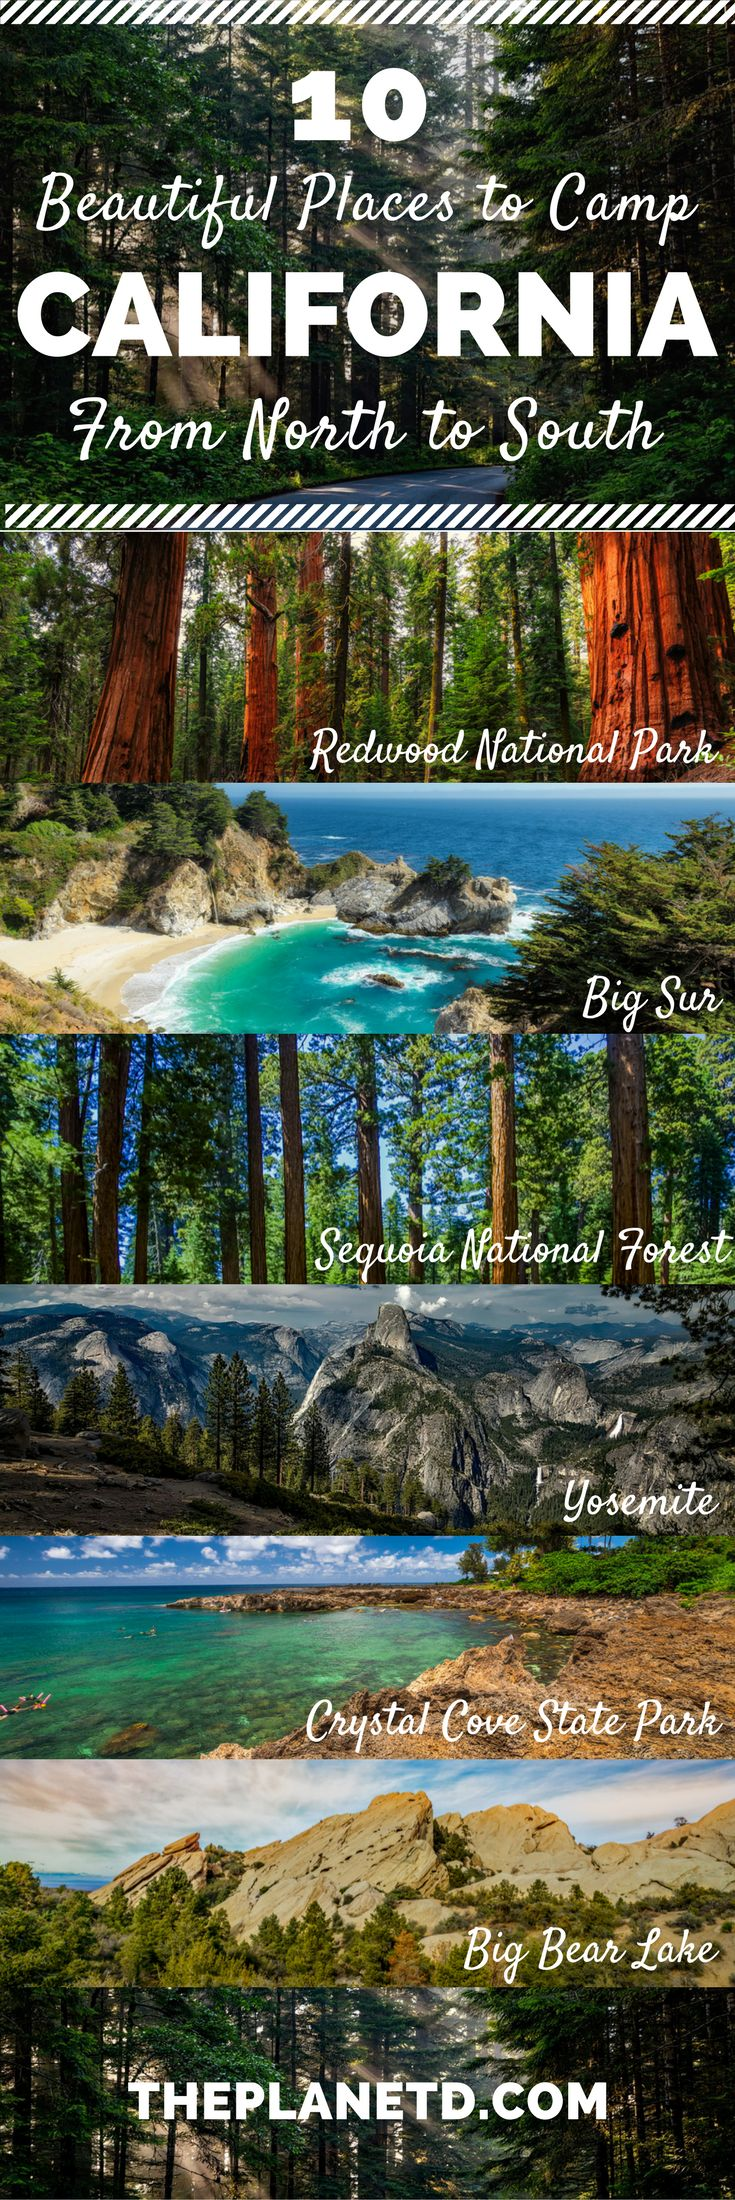 Ten of the most beautiful camping spots in California. From Redwood National Park in the north, to Big Bear Lake in the south, and Big Sur and Yosemite in-between, these camping sites make up the ultimate California road trip itinerary. Travel in the USA. | Blog by The Planet D #Travel #California